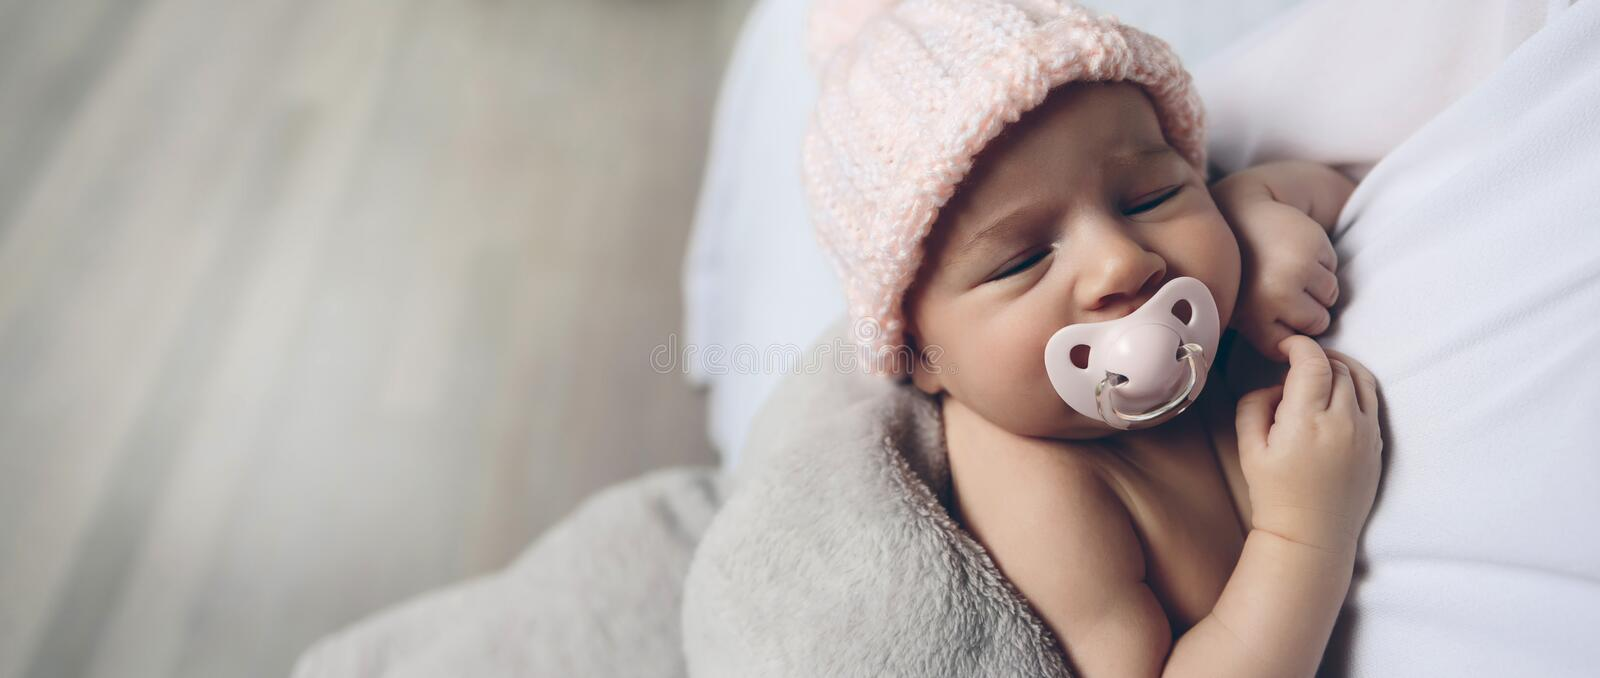 Baby girl with pacifier sleeping stock images